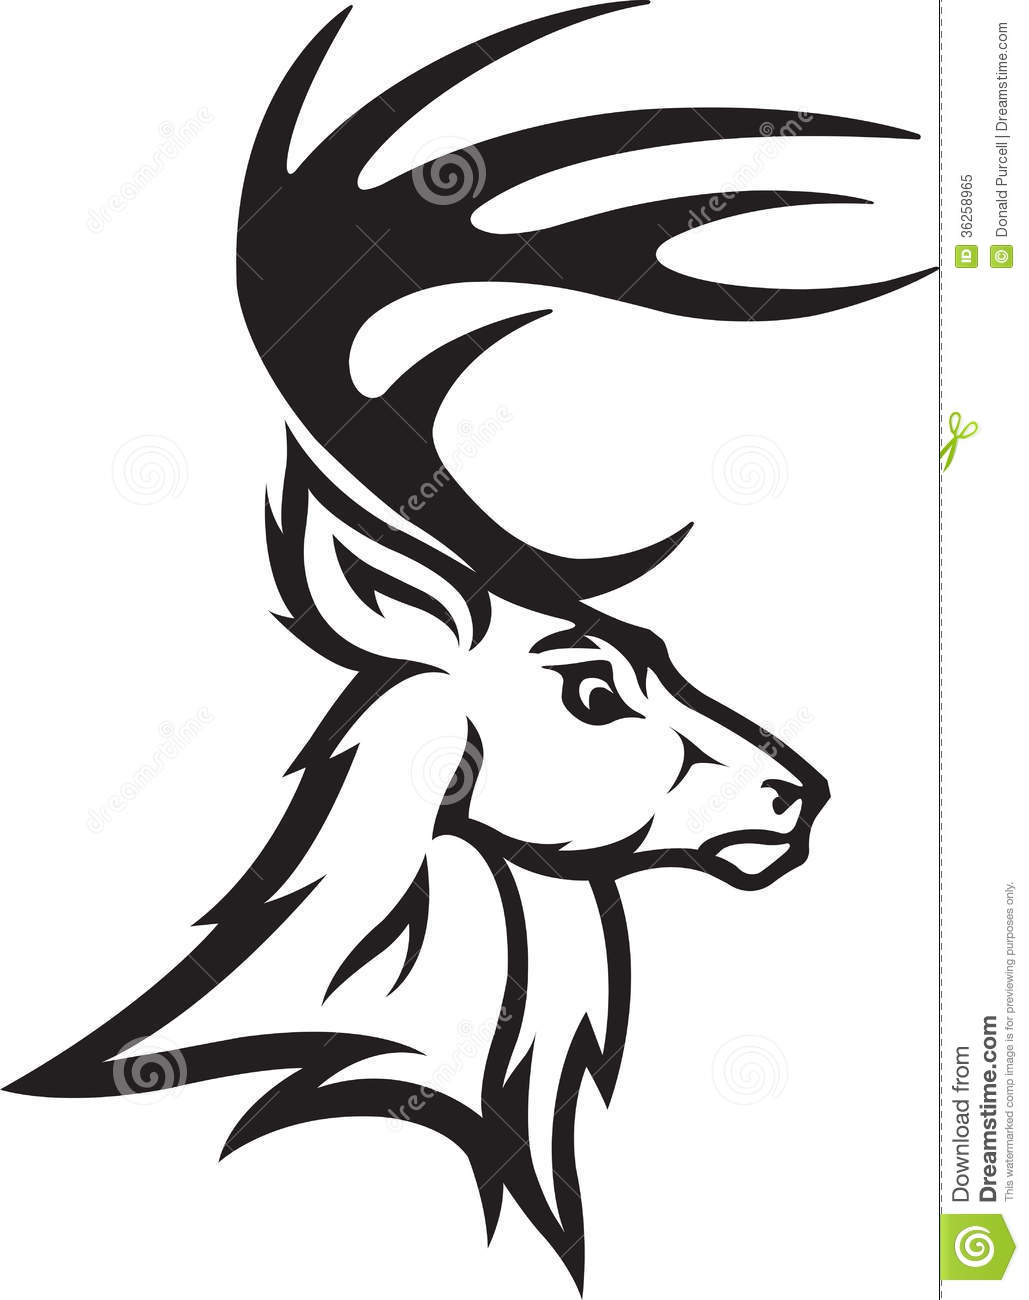 Drawn dear black and white Tail Vector White images head